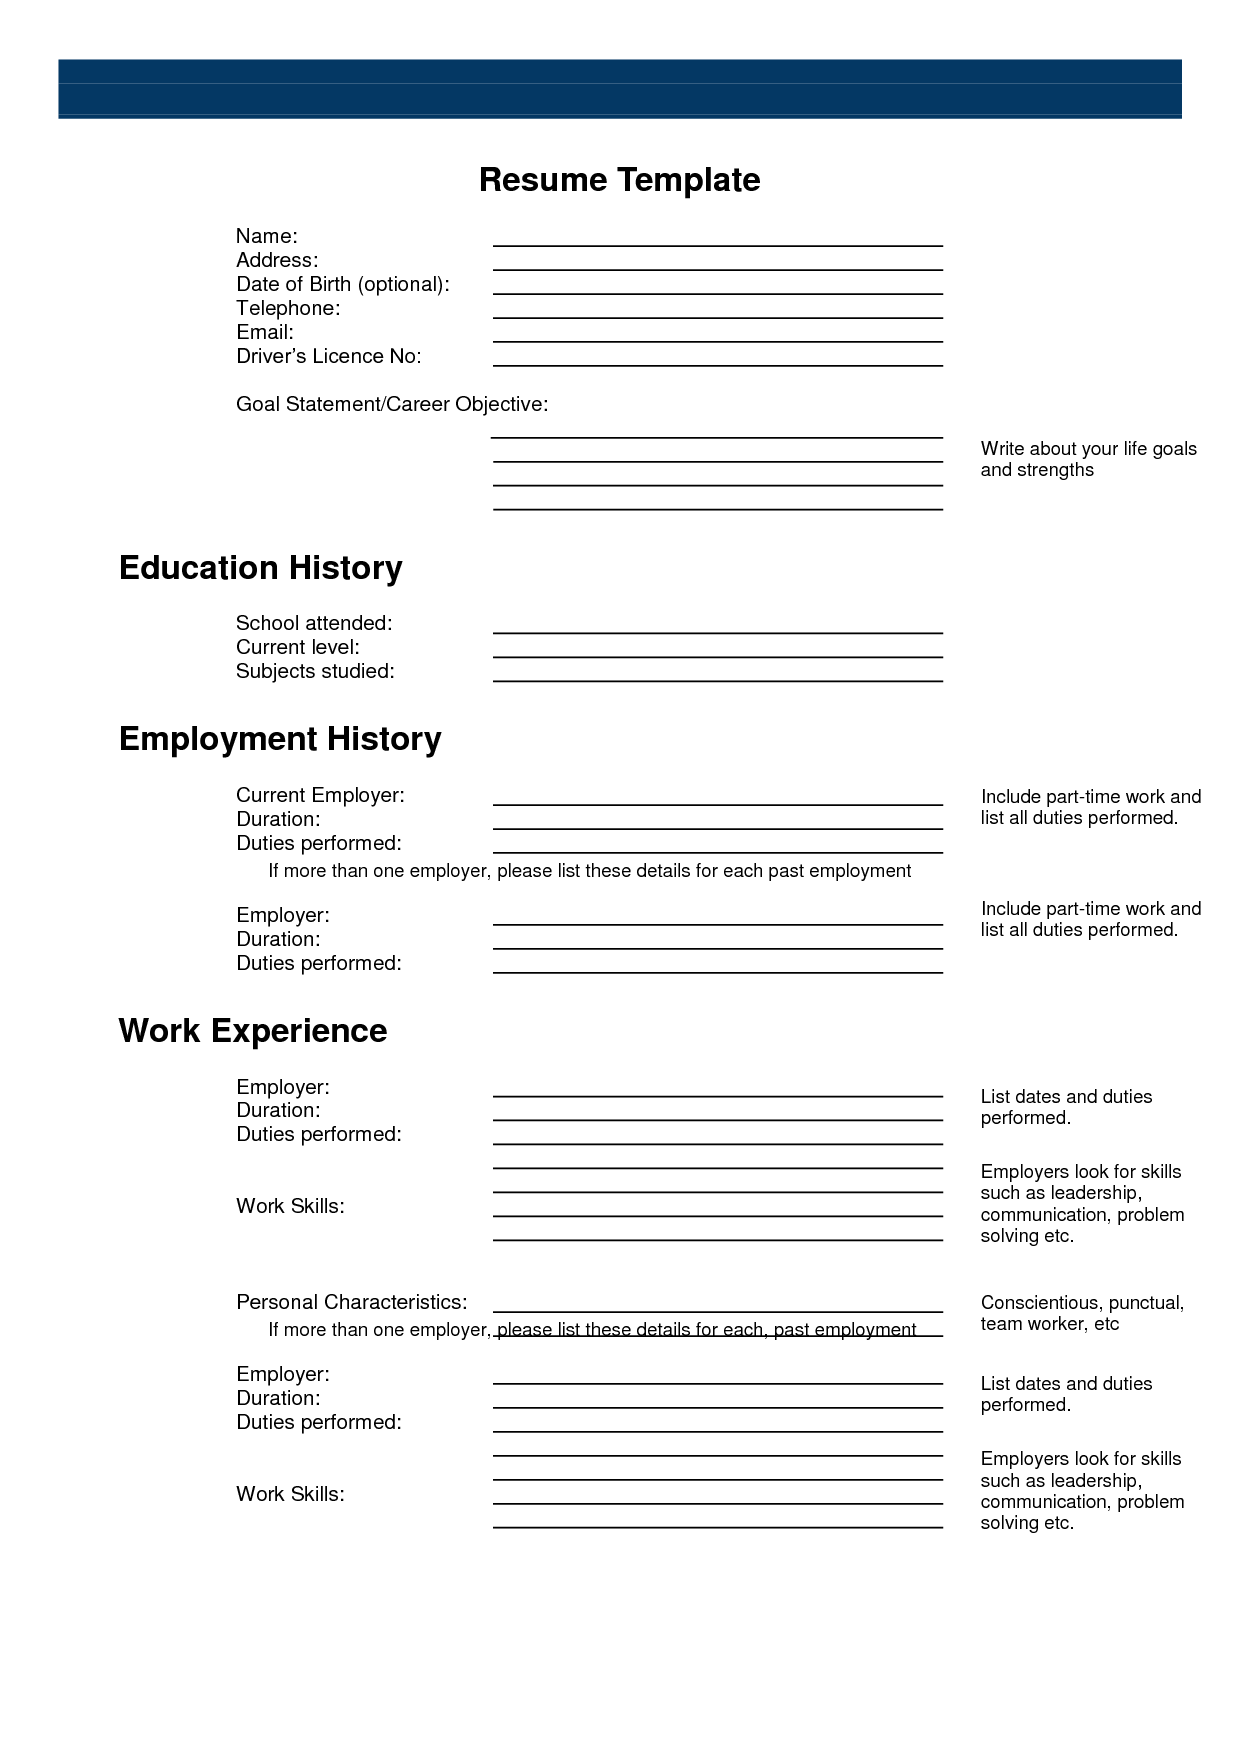 Free Printable Sample Resume Templates Http Www Resumecareer